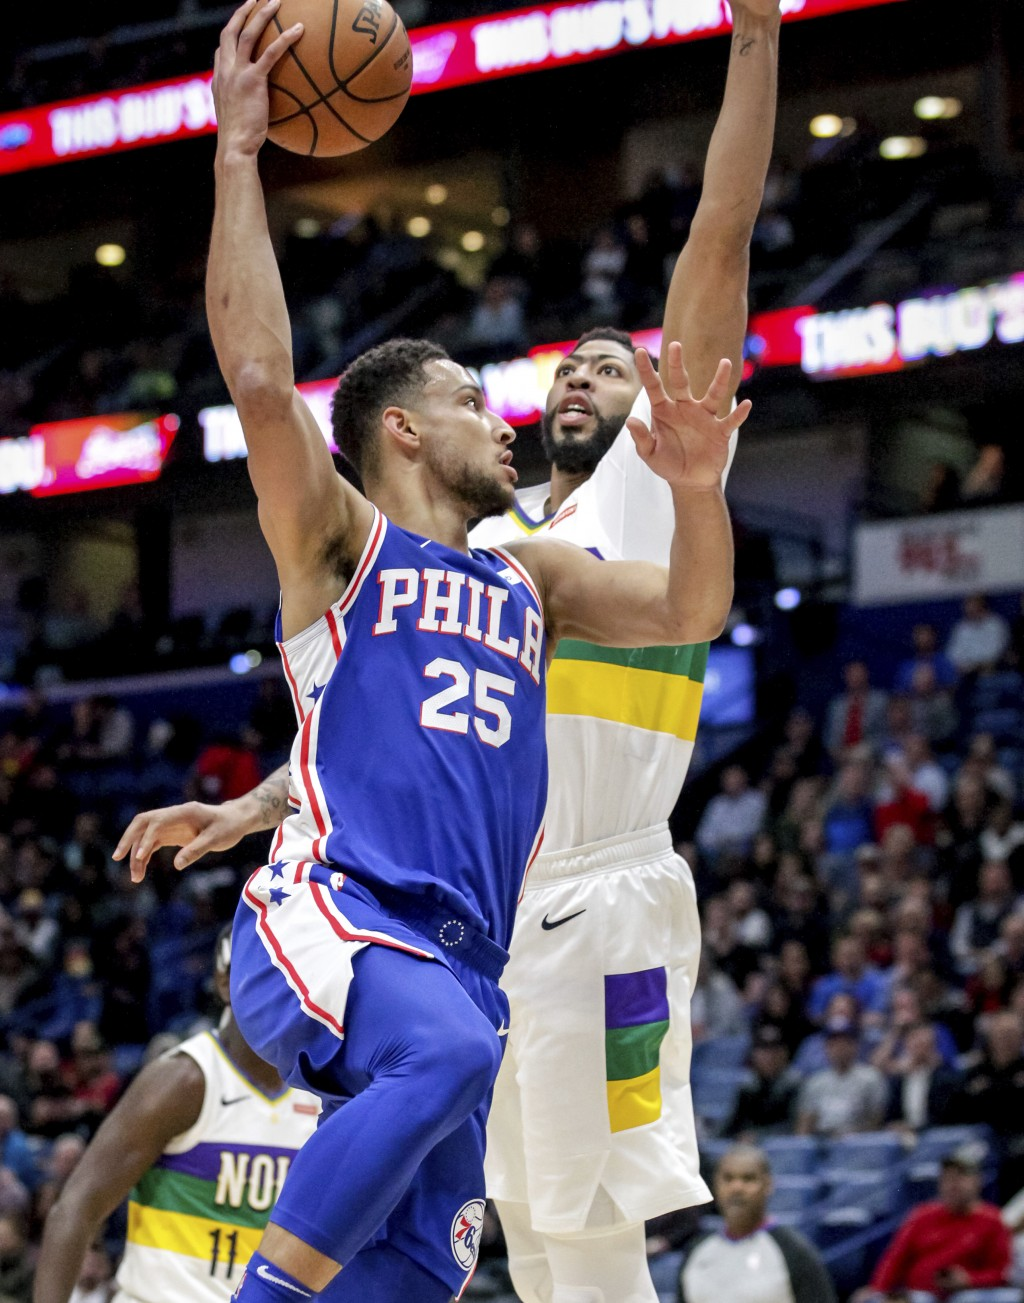 Philadelphia 76ers guard Ben Simmons (25) shoots against New Orleans Pelicans forward Anthony Davis (23) in the first half of an NBA basketball game i